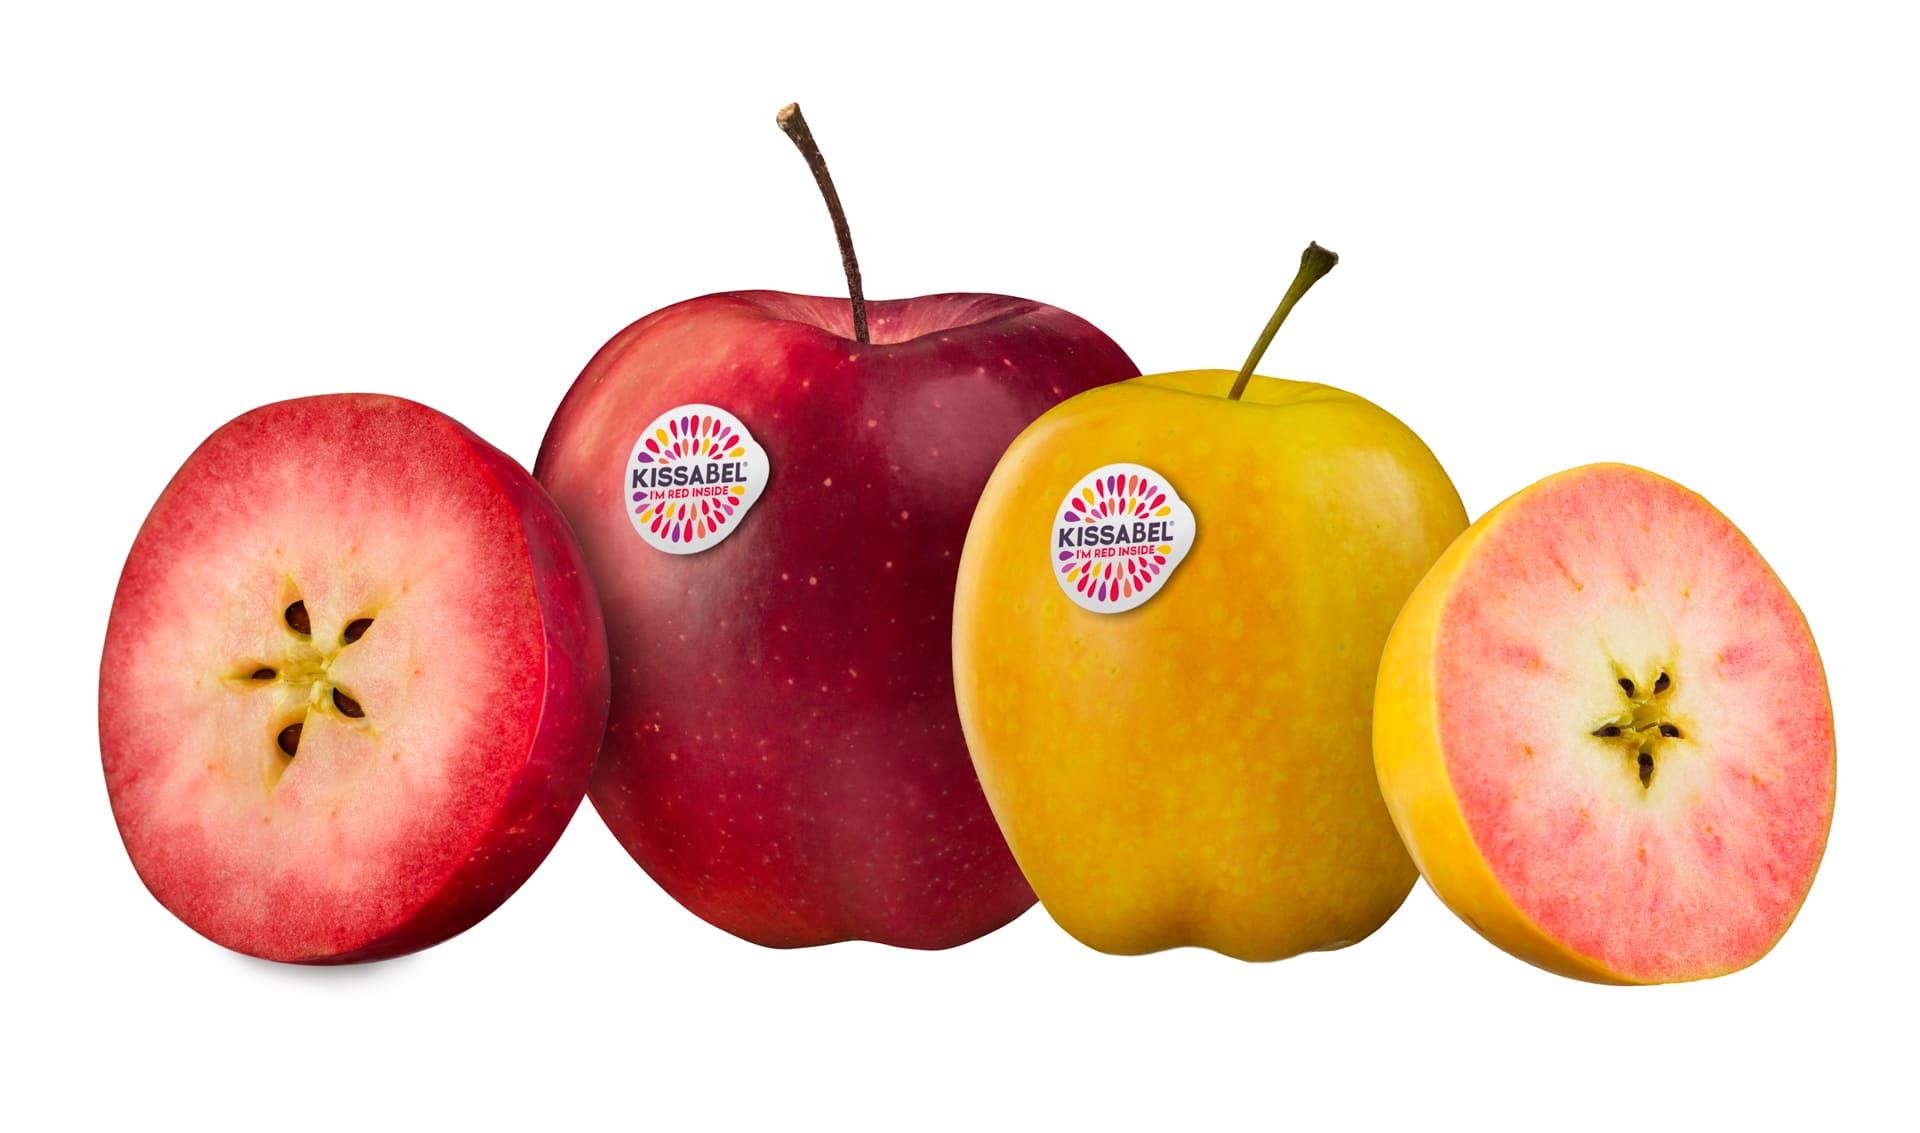 Demand for Kissabel® Apples continues to outstrip supply